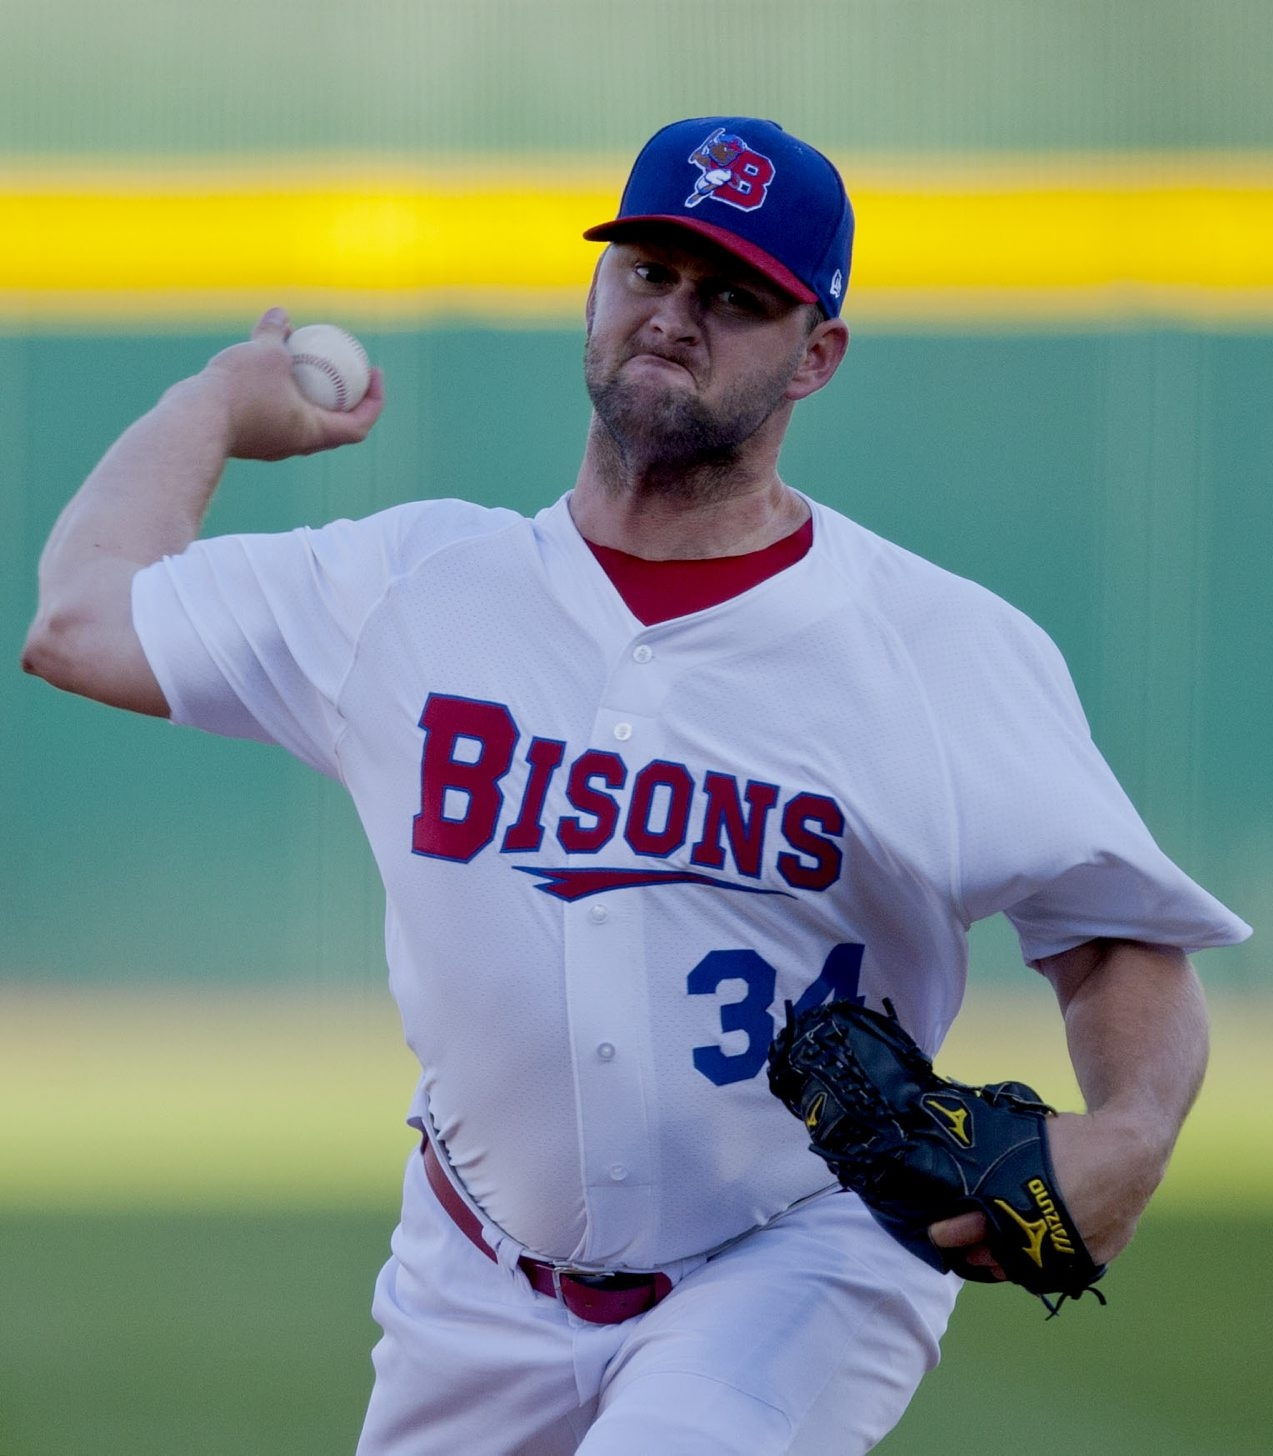 Buffalo's Todd Redmond delivers against the Gwinnett Braves on Monday.